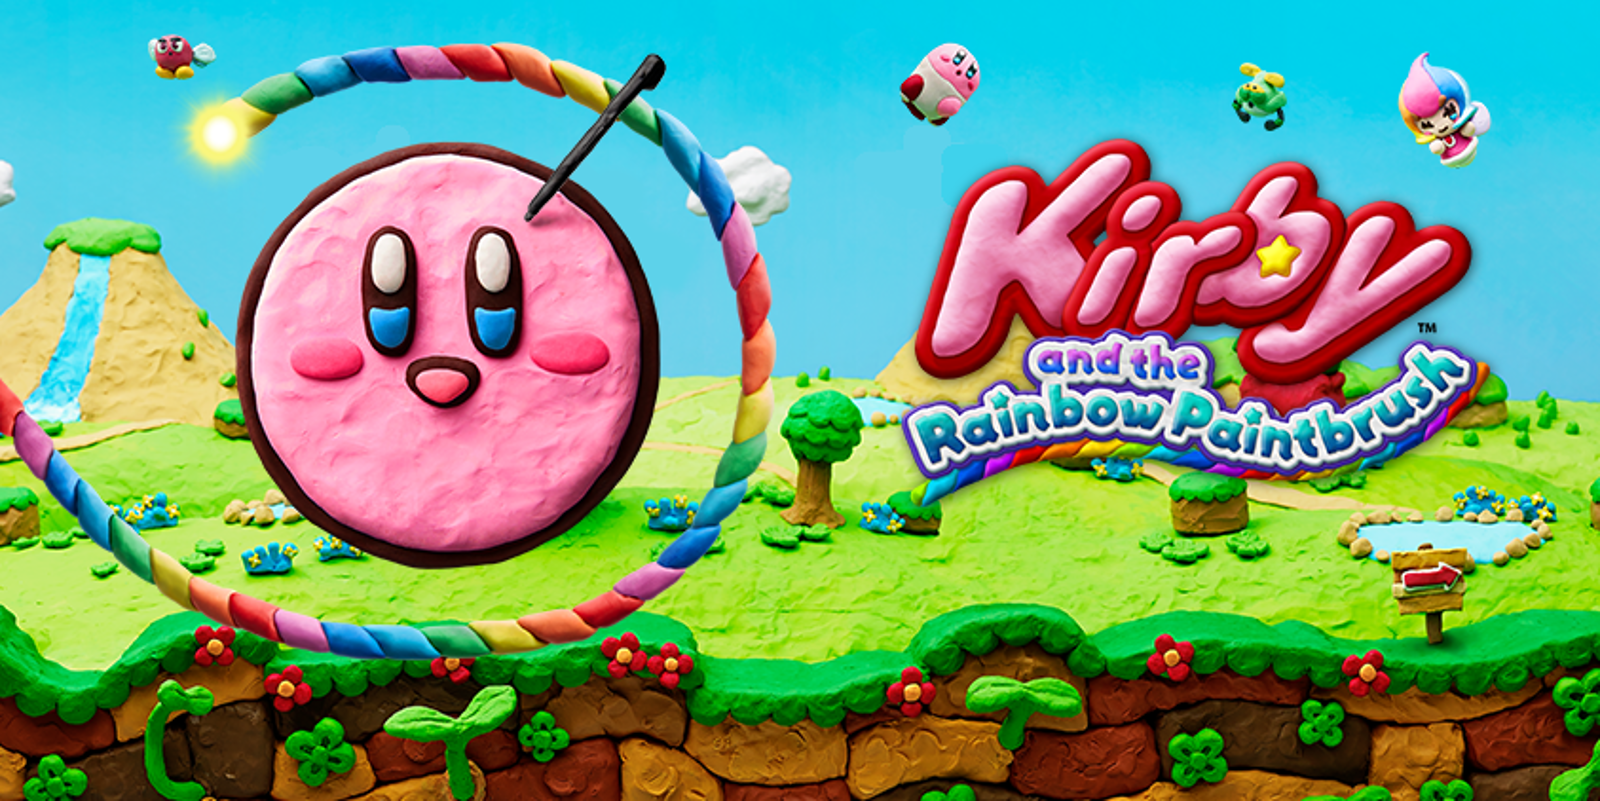 Kirby And The Rainbow Paintbrush (Wii U, 2015)